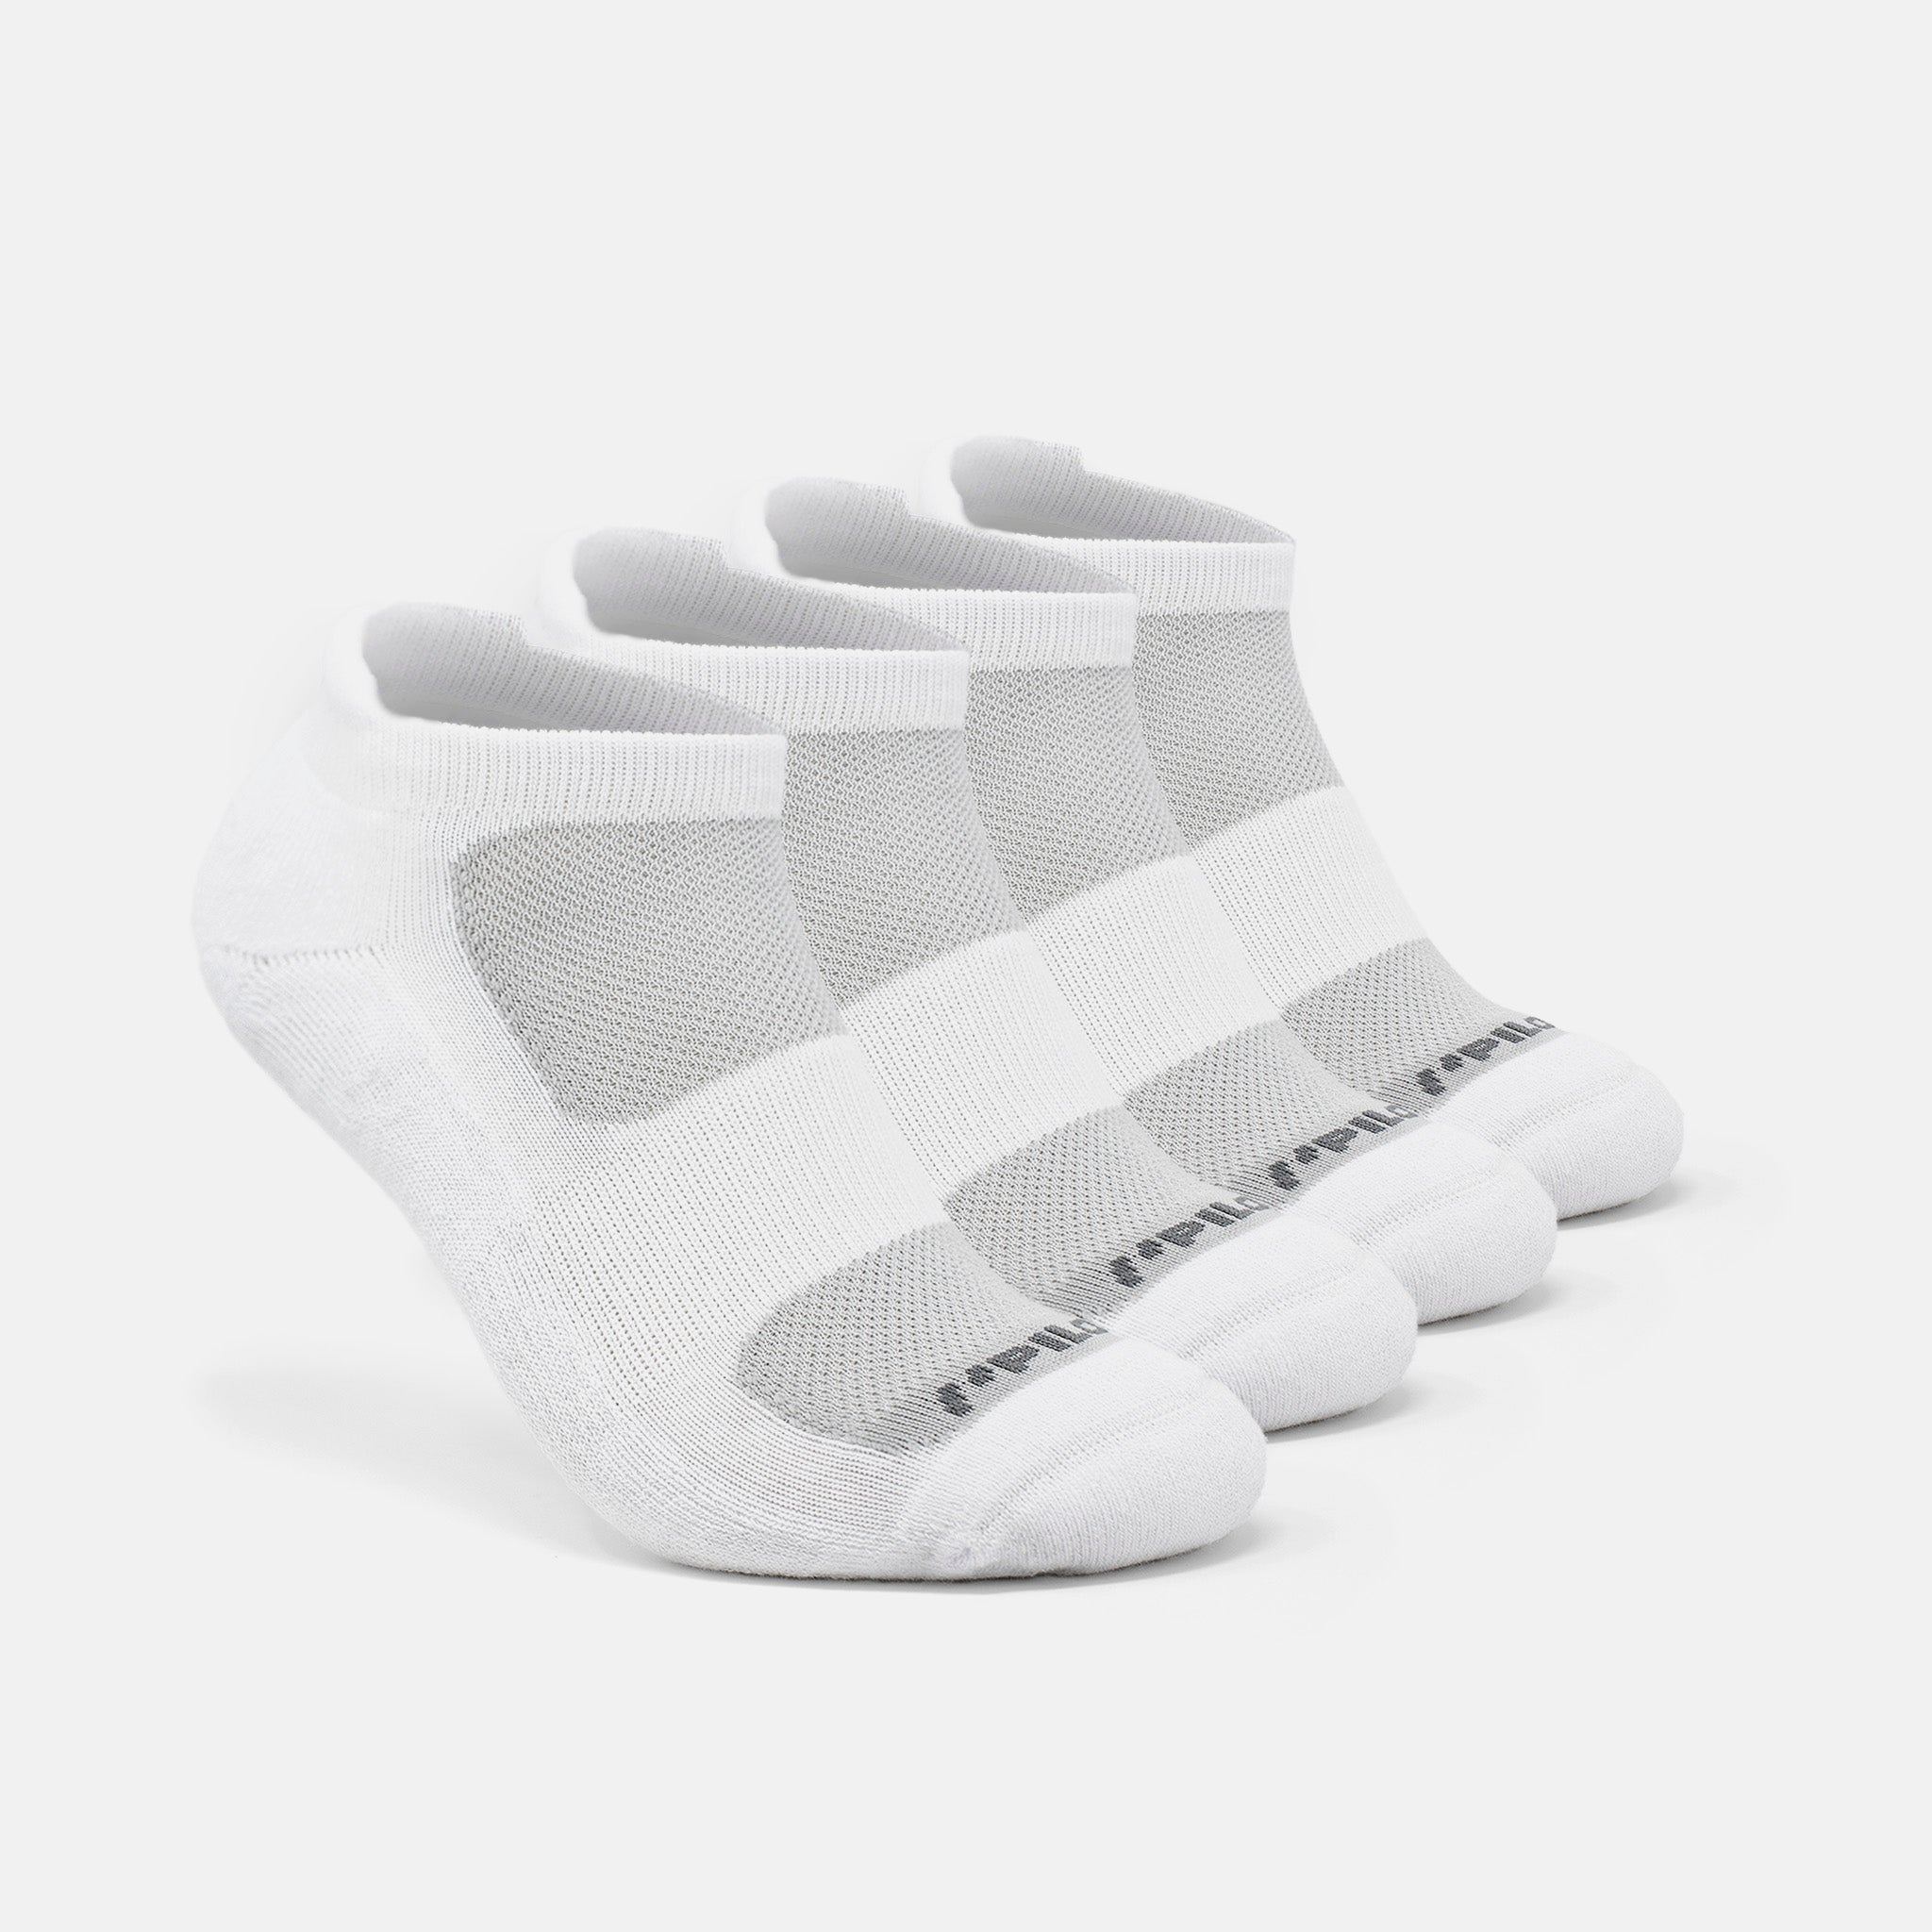 Men's Socks 4 Pack - White